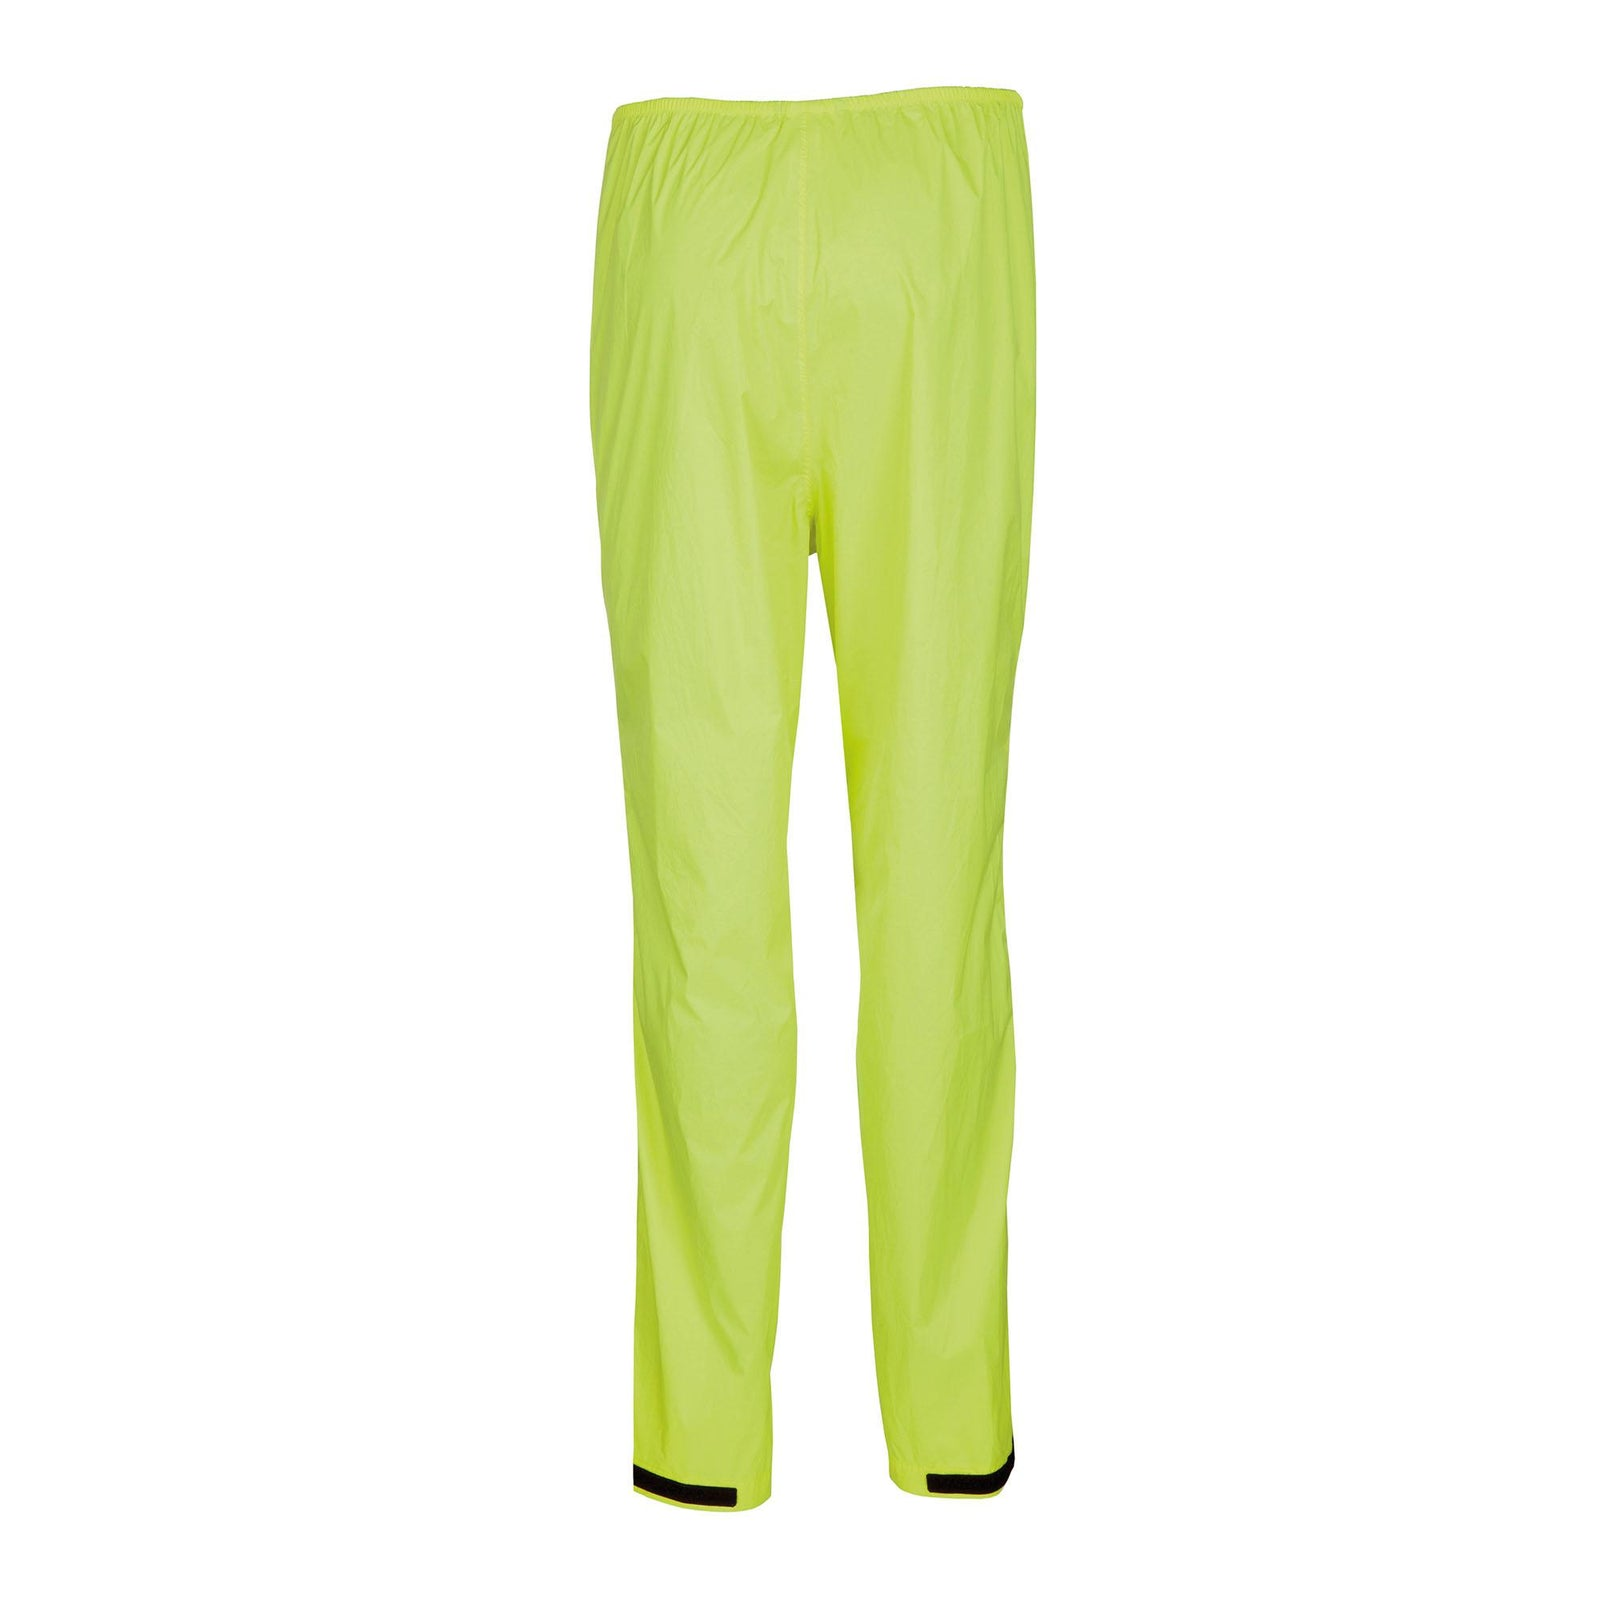 Tucano Urbano Rain Trousers Panta Nano Plus Yellow Fluorescent